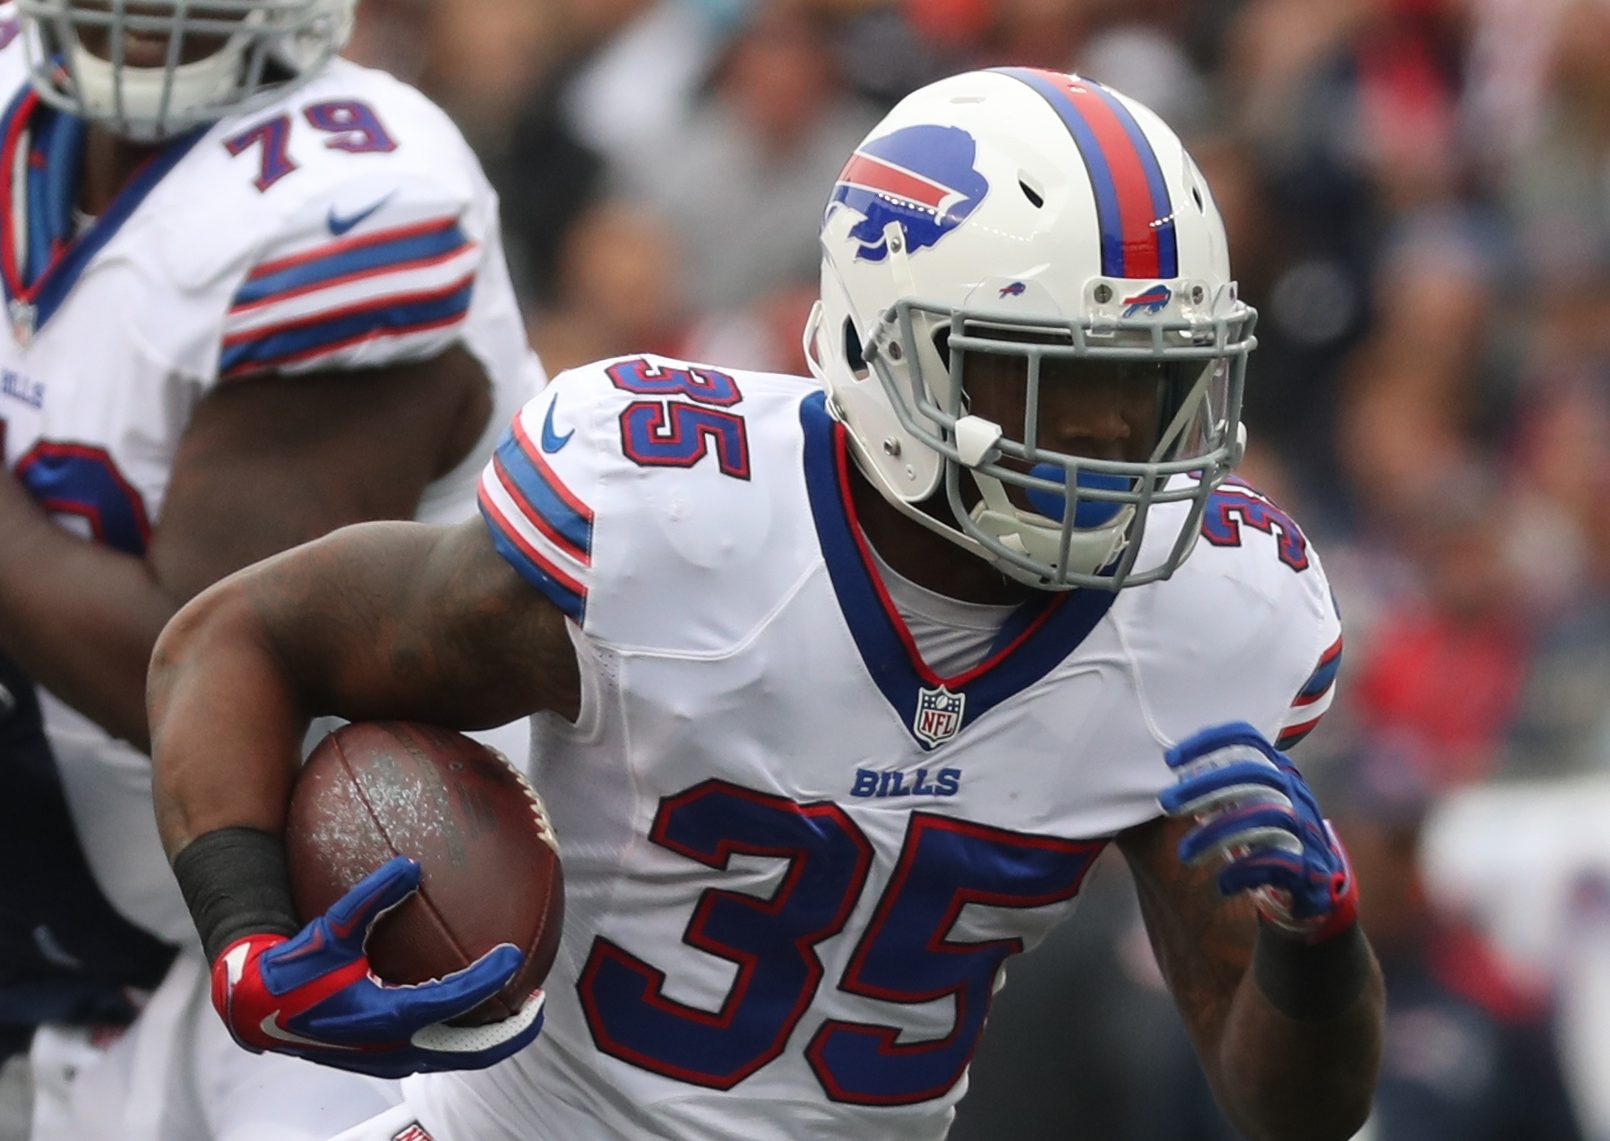 Buffalo Bills running back Mike Gillislee (35) rushes for a first down.